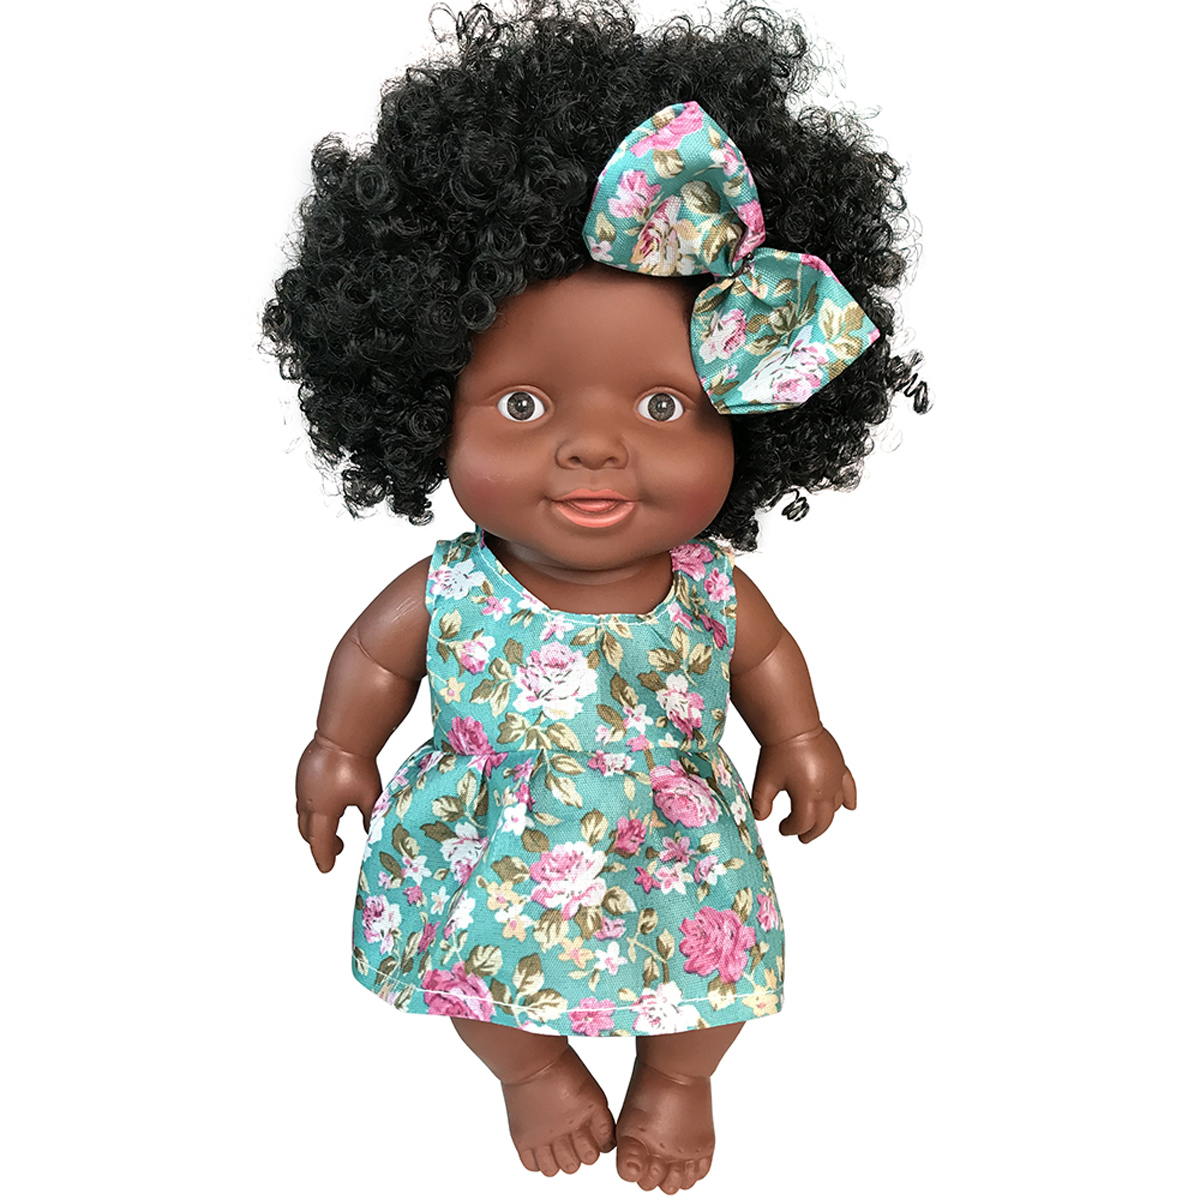 10/'/' Toddler Accompany Gift Reborn Girl Doll Handmade African American Dolls Toy